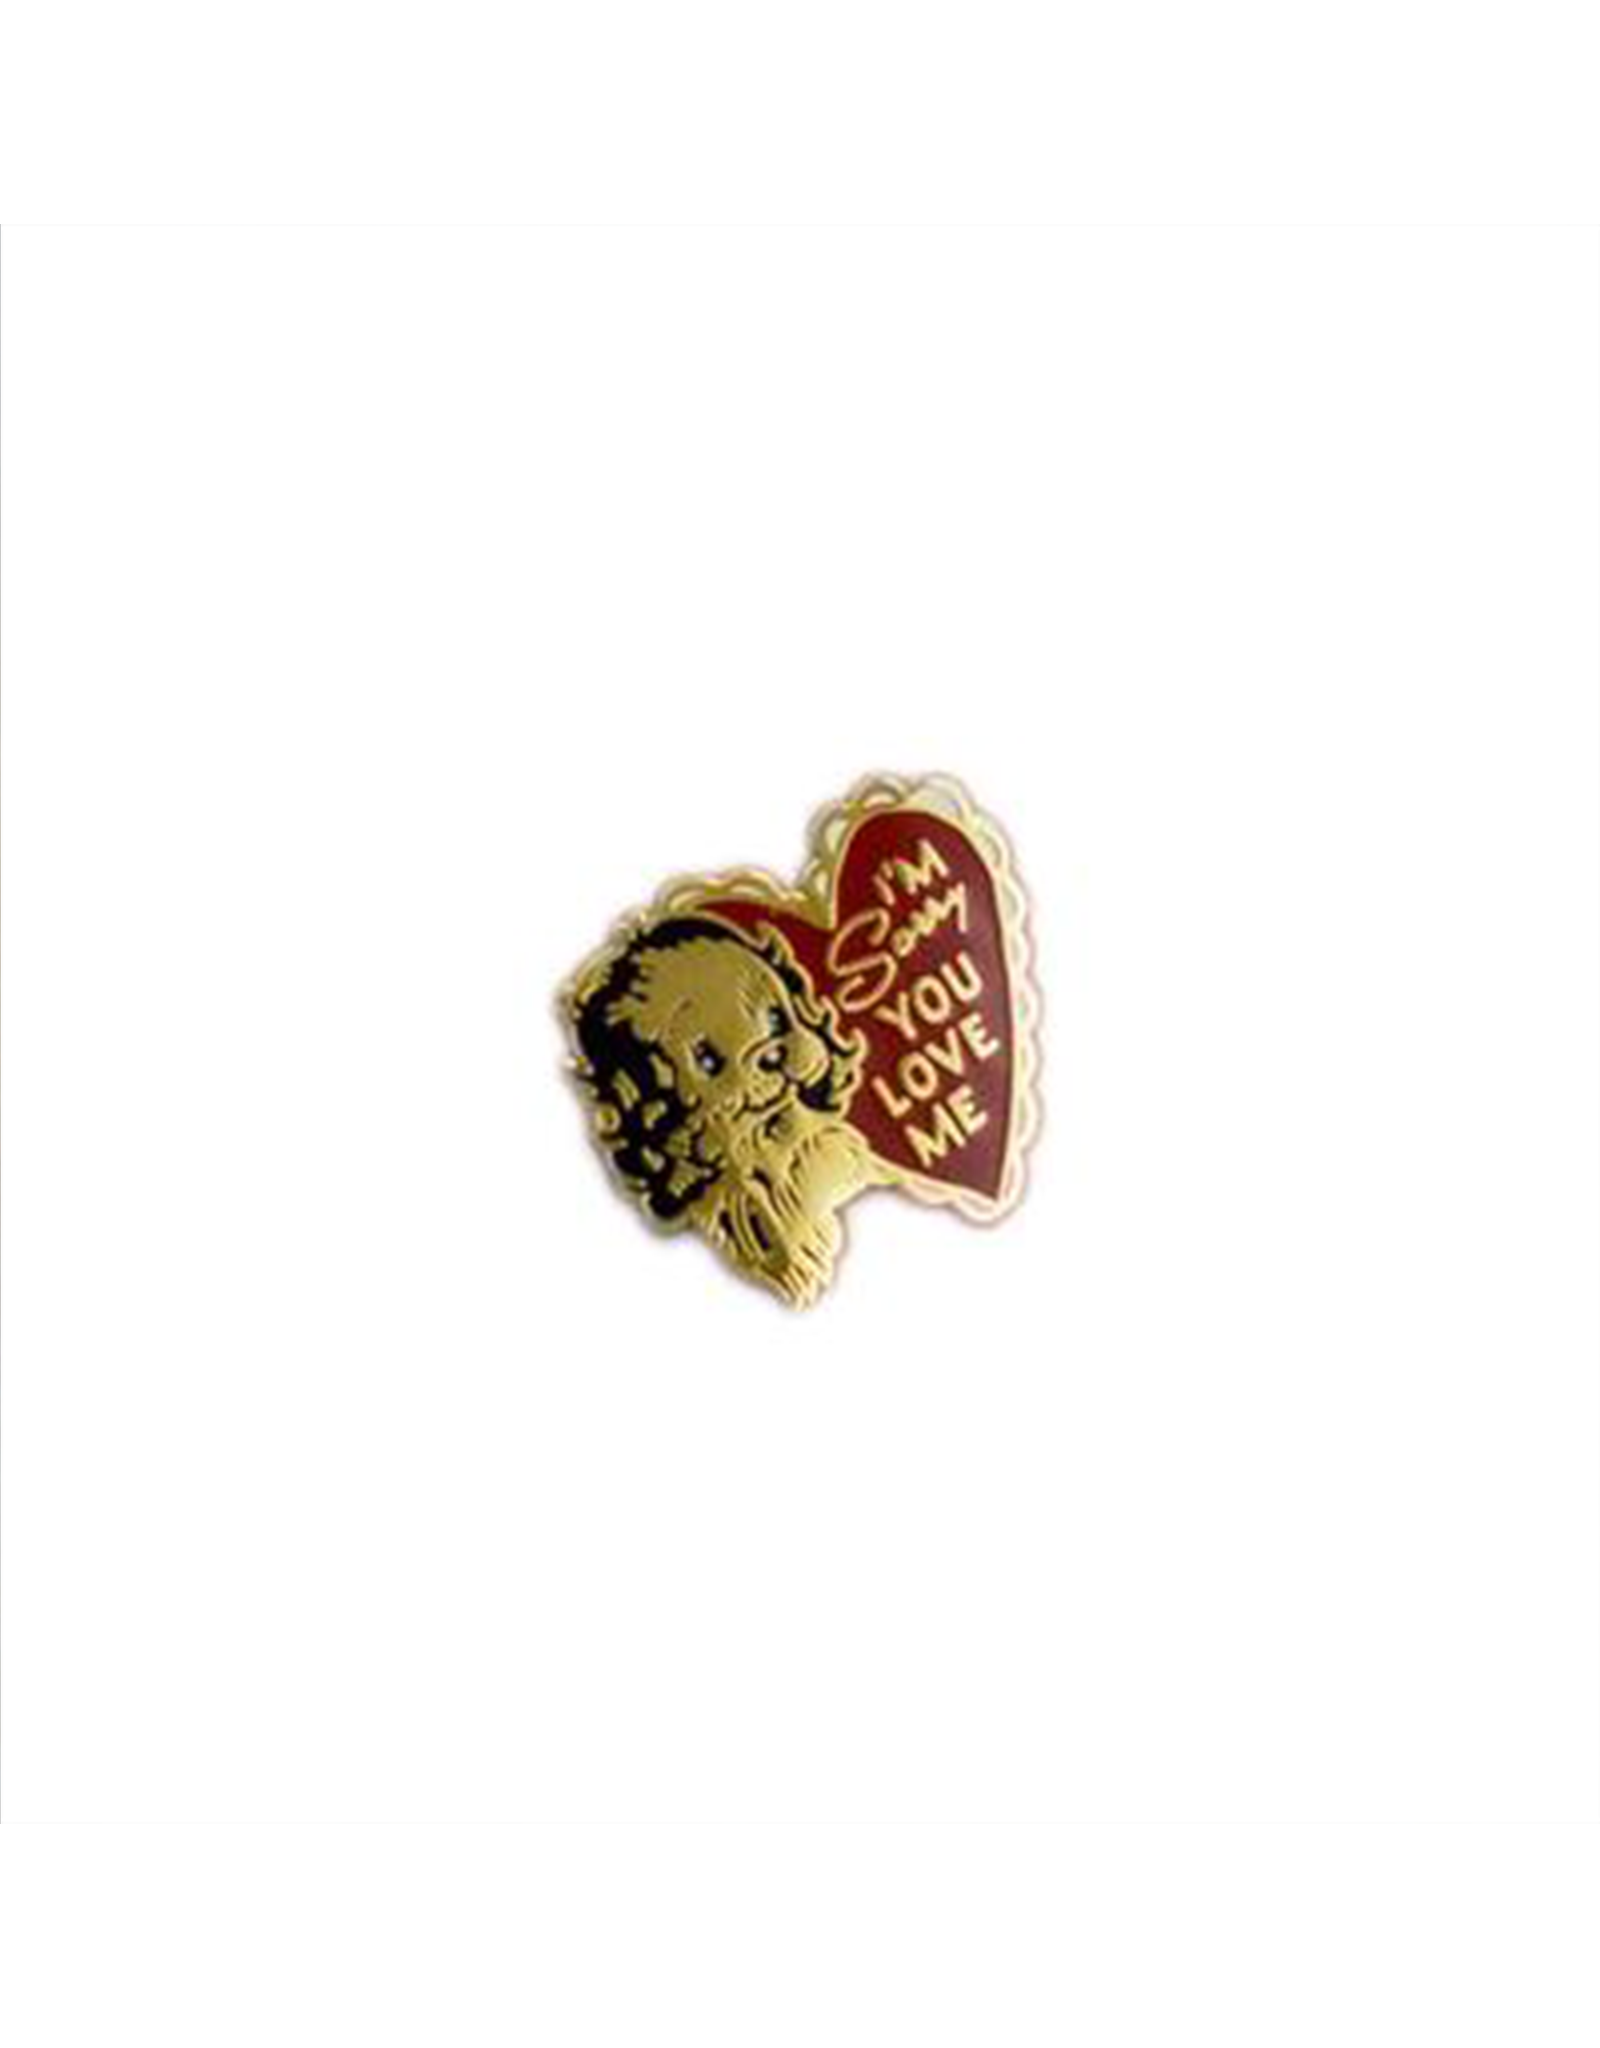 Stay Home Club Sorry You Love Me Lapel Pin